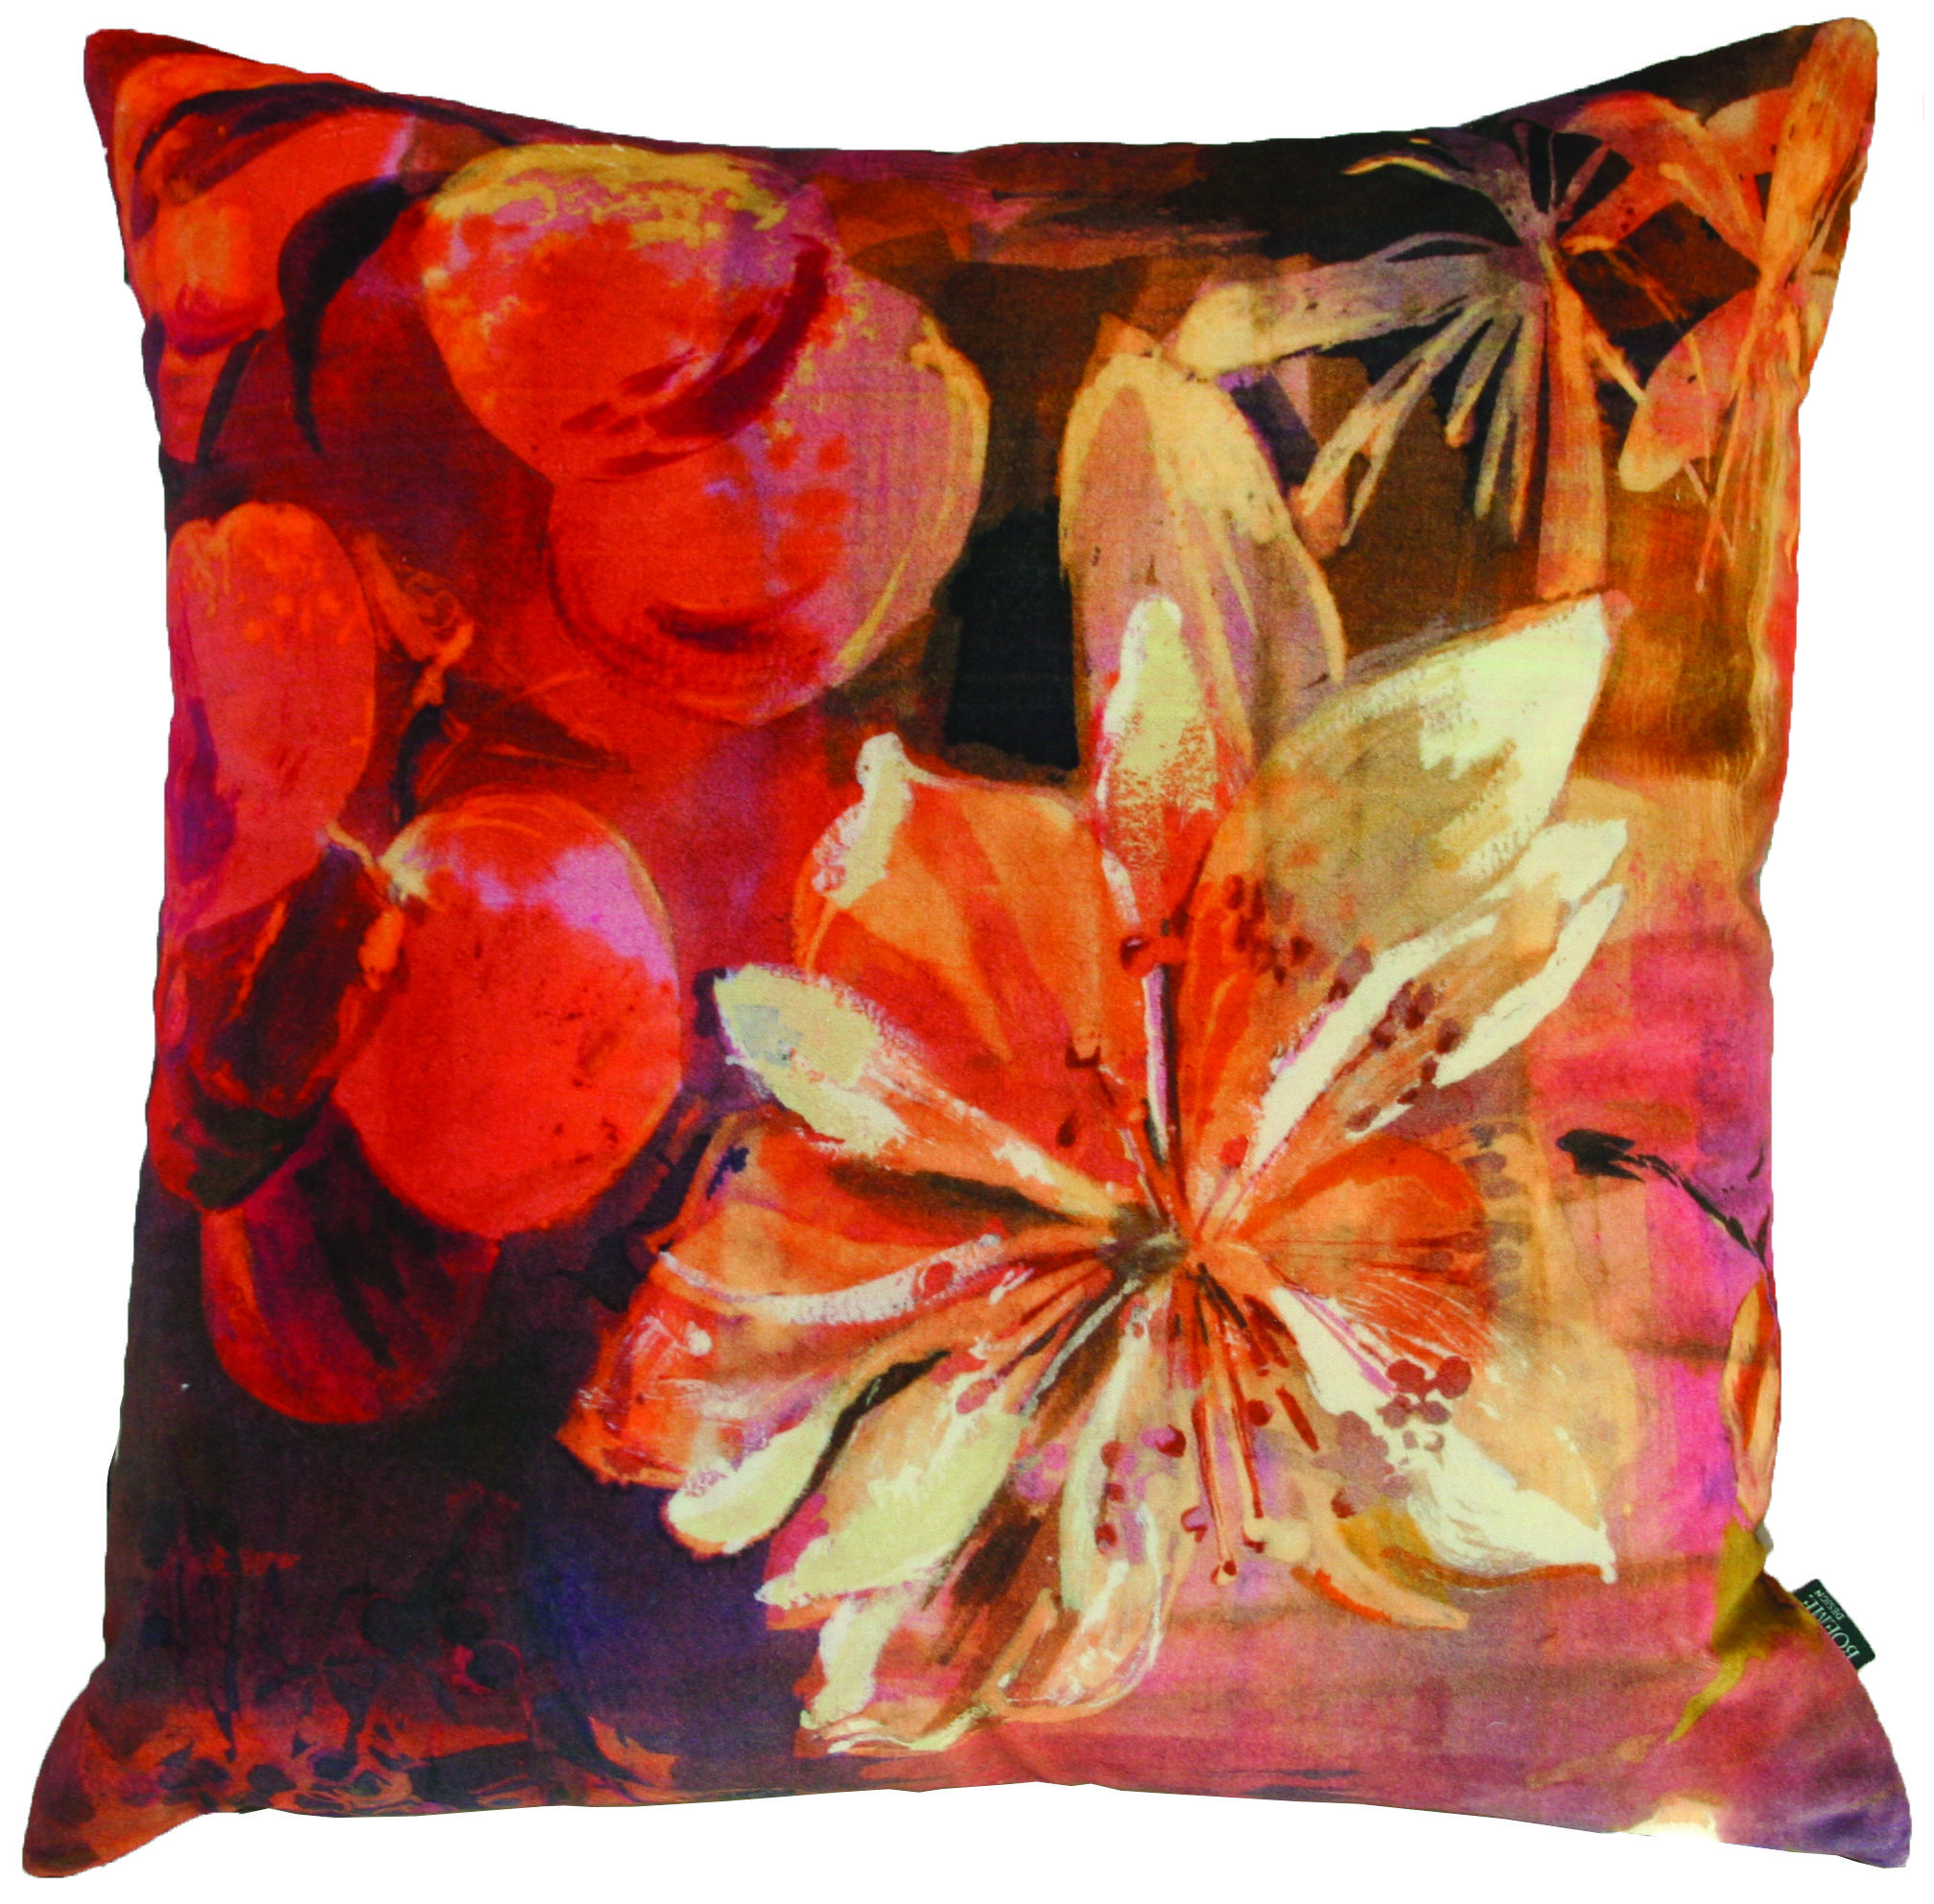 Gloria new eme cushions u furnishings pinterest